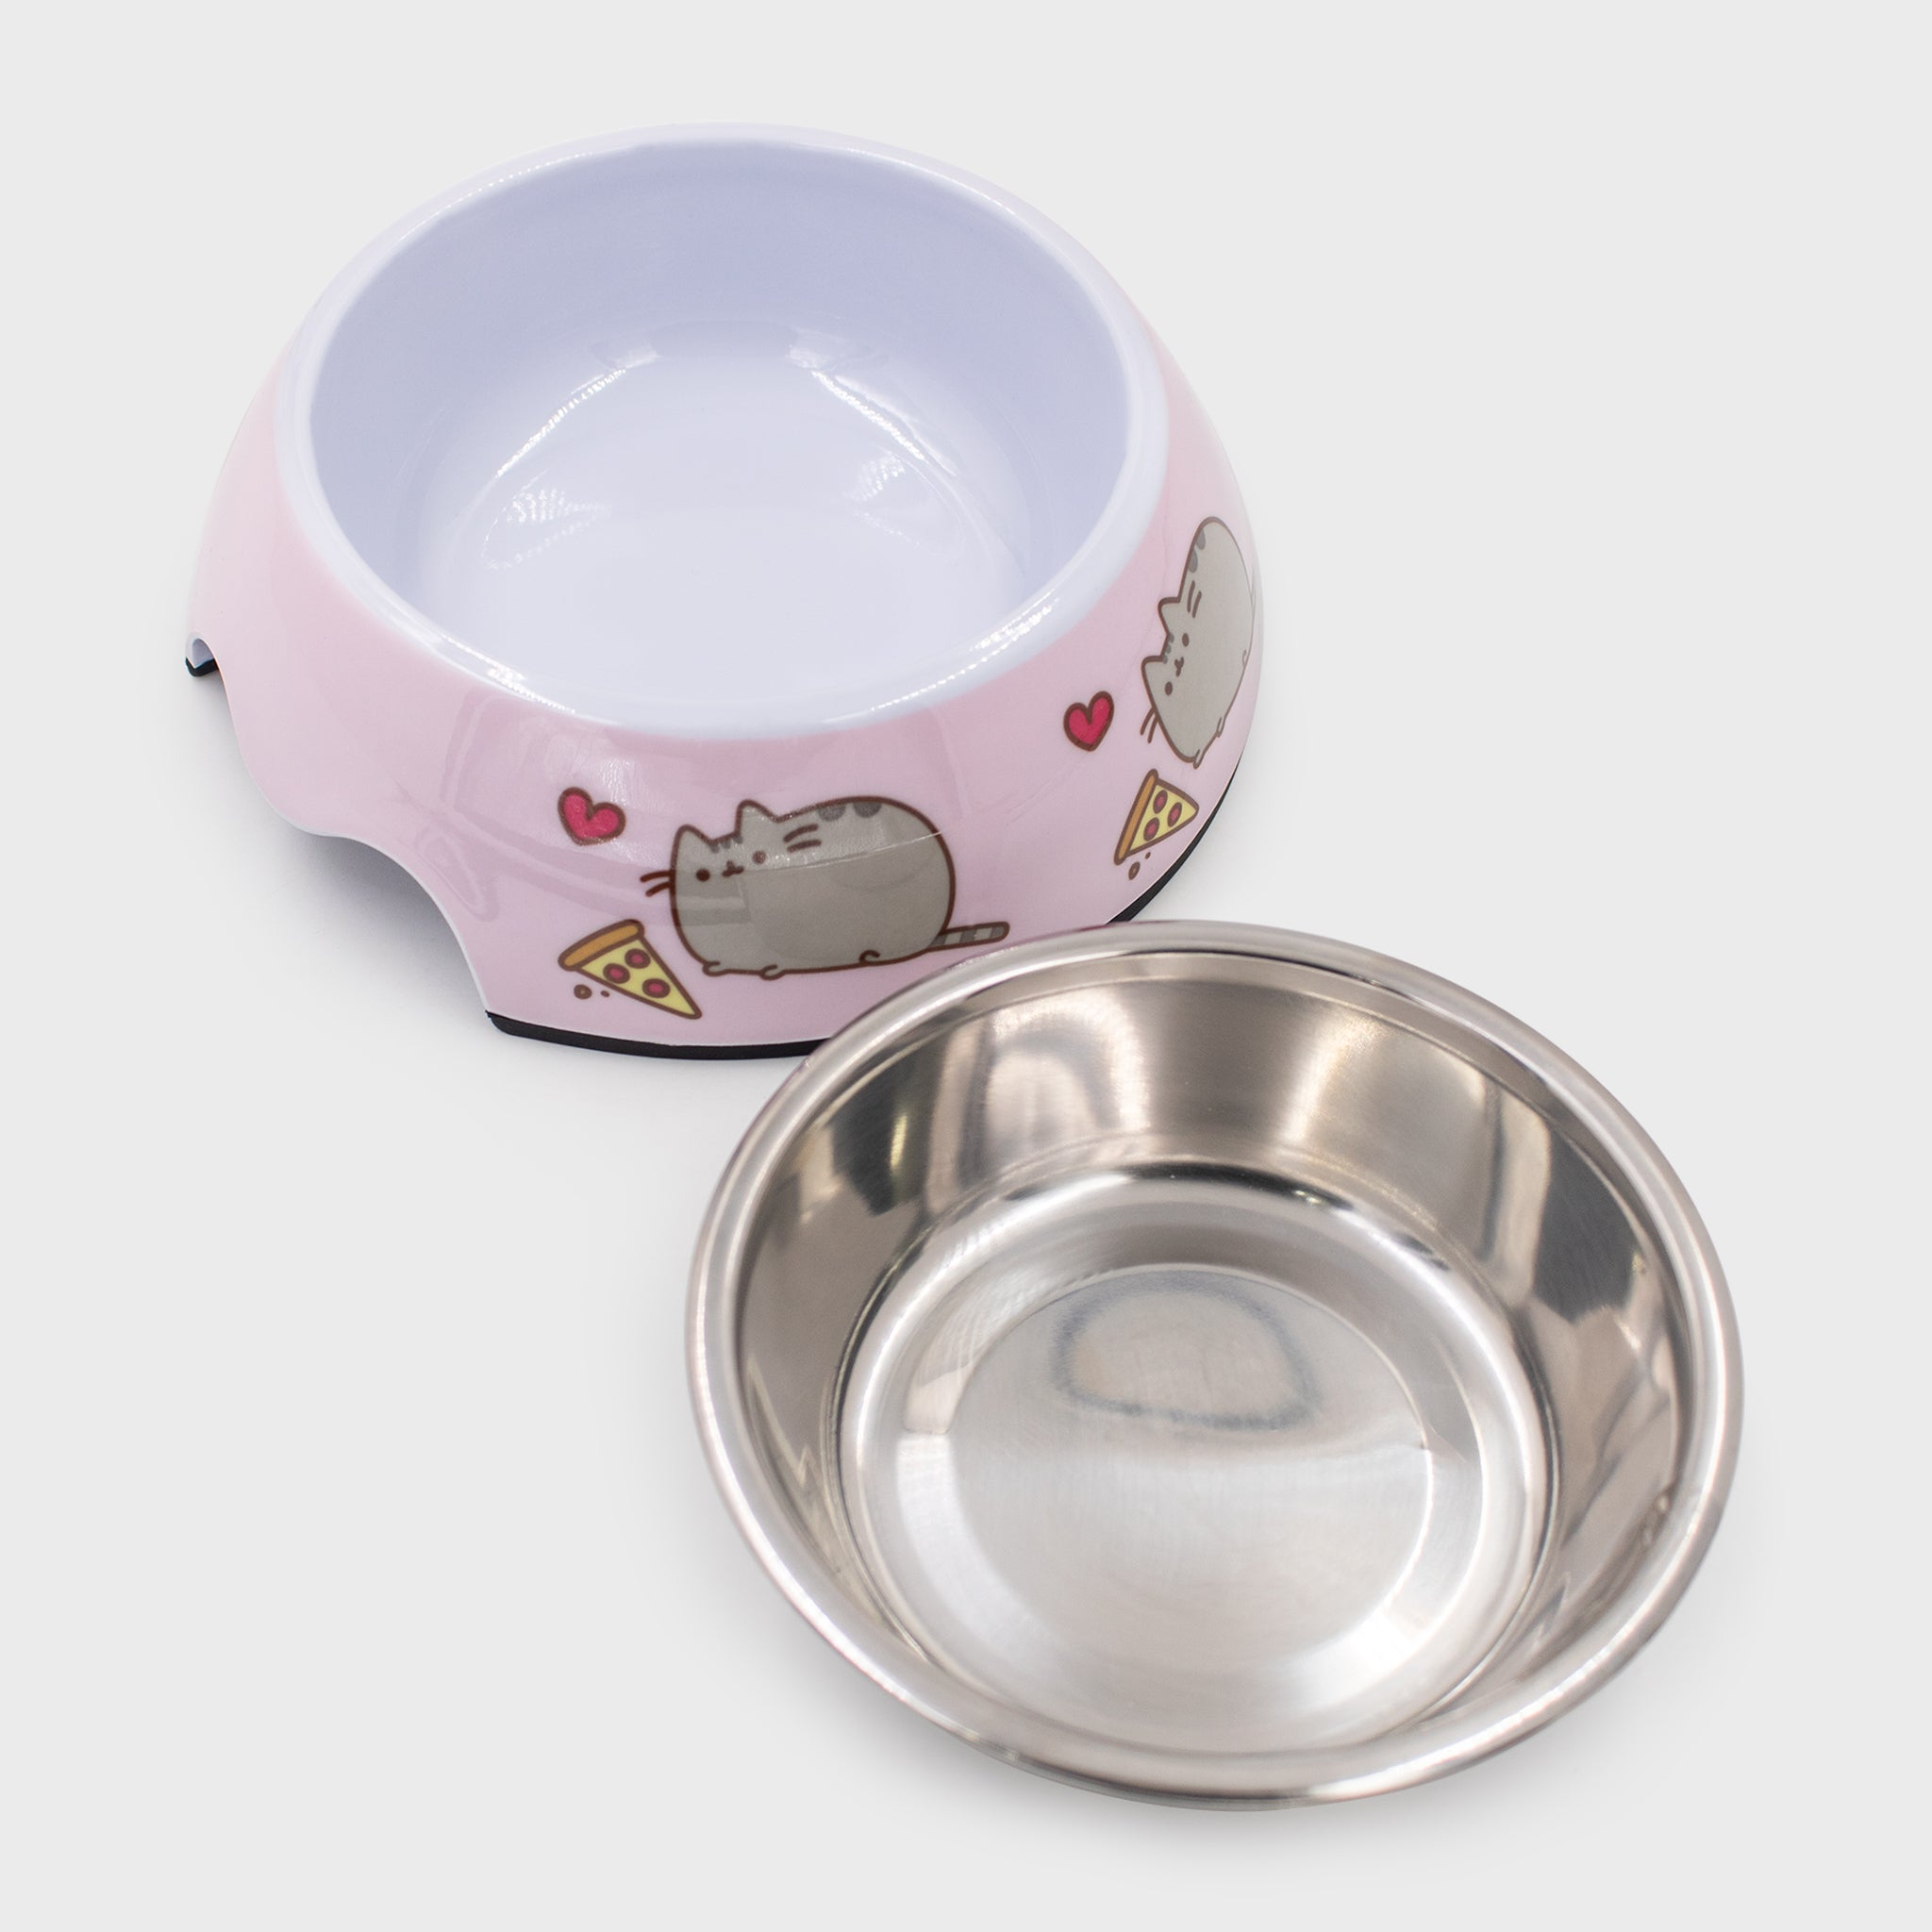 pusheen food bowl pet dog cat cute culturefly